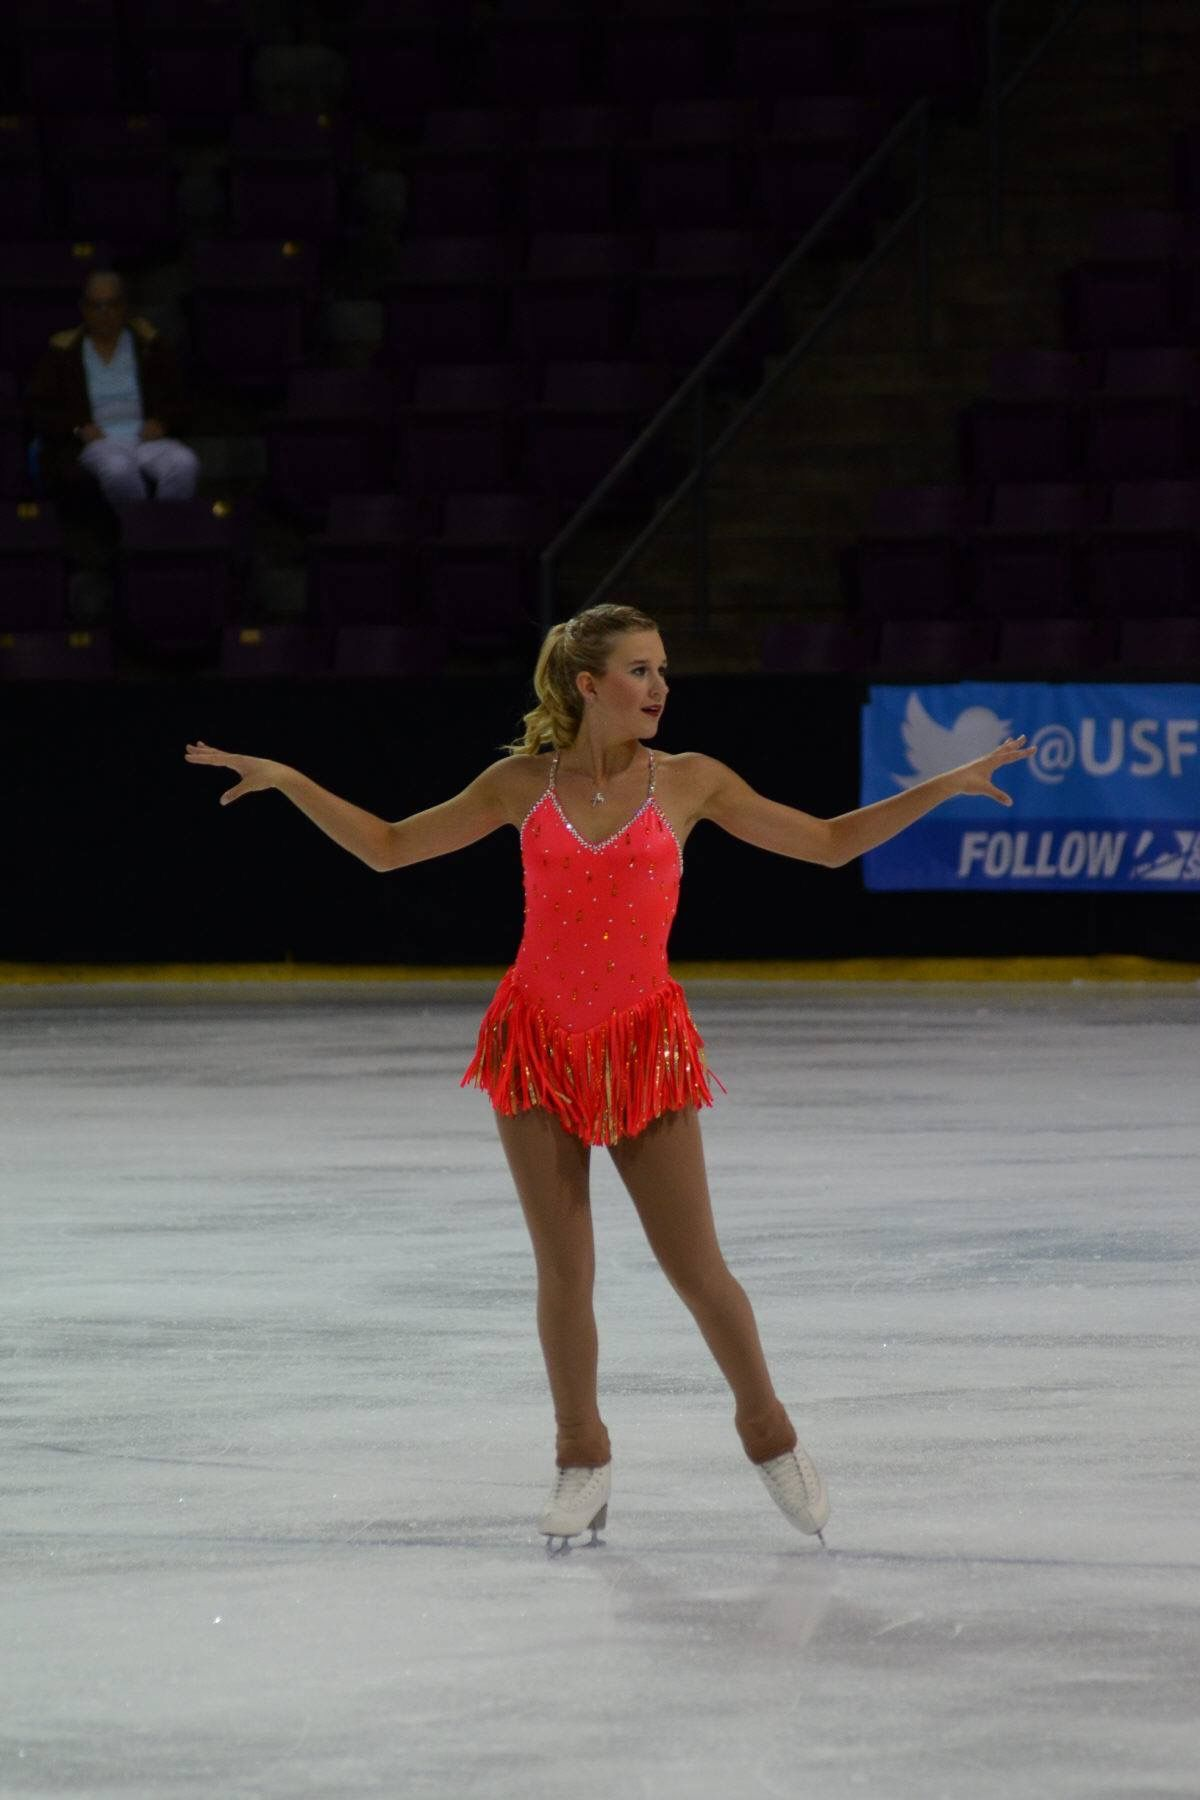 figure skating dress by kelley matthews designs  this was designed  figure skating dress by kelley matthews designs  this was designed for a  smash program but would also work for a jazz or chicago theme learn more  at www